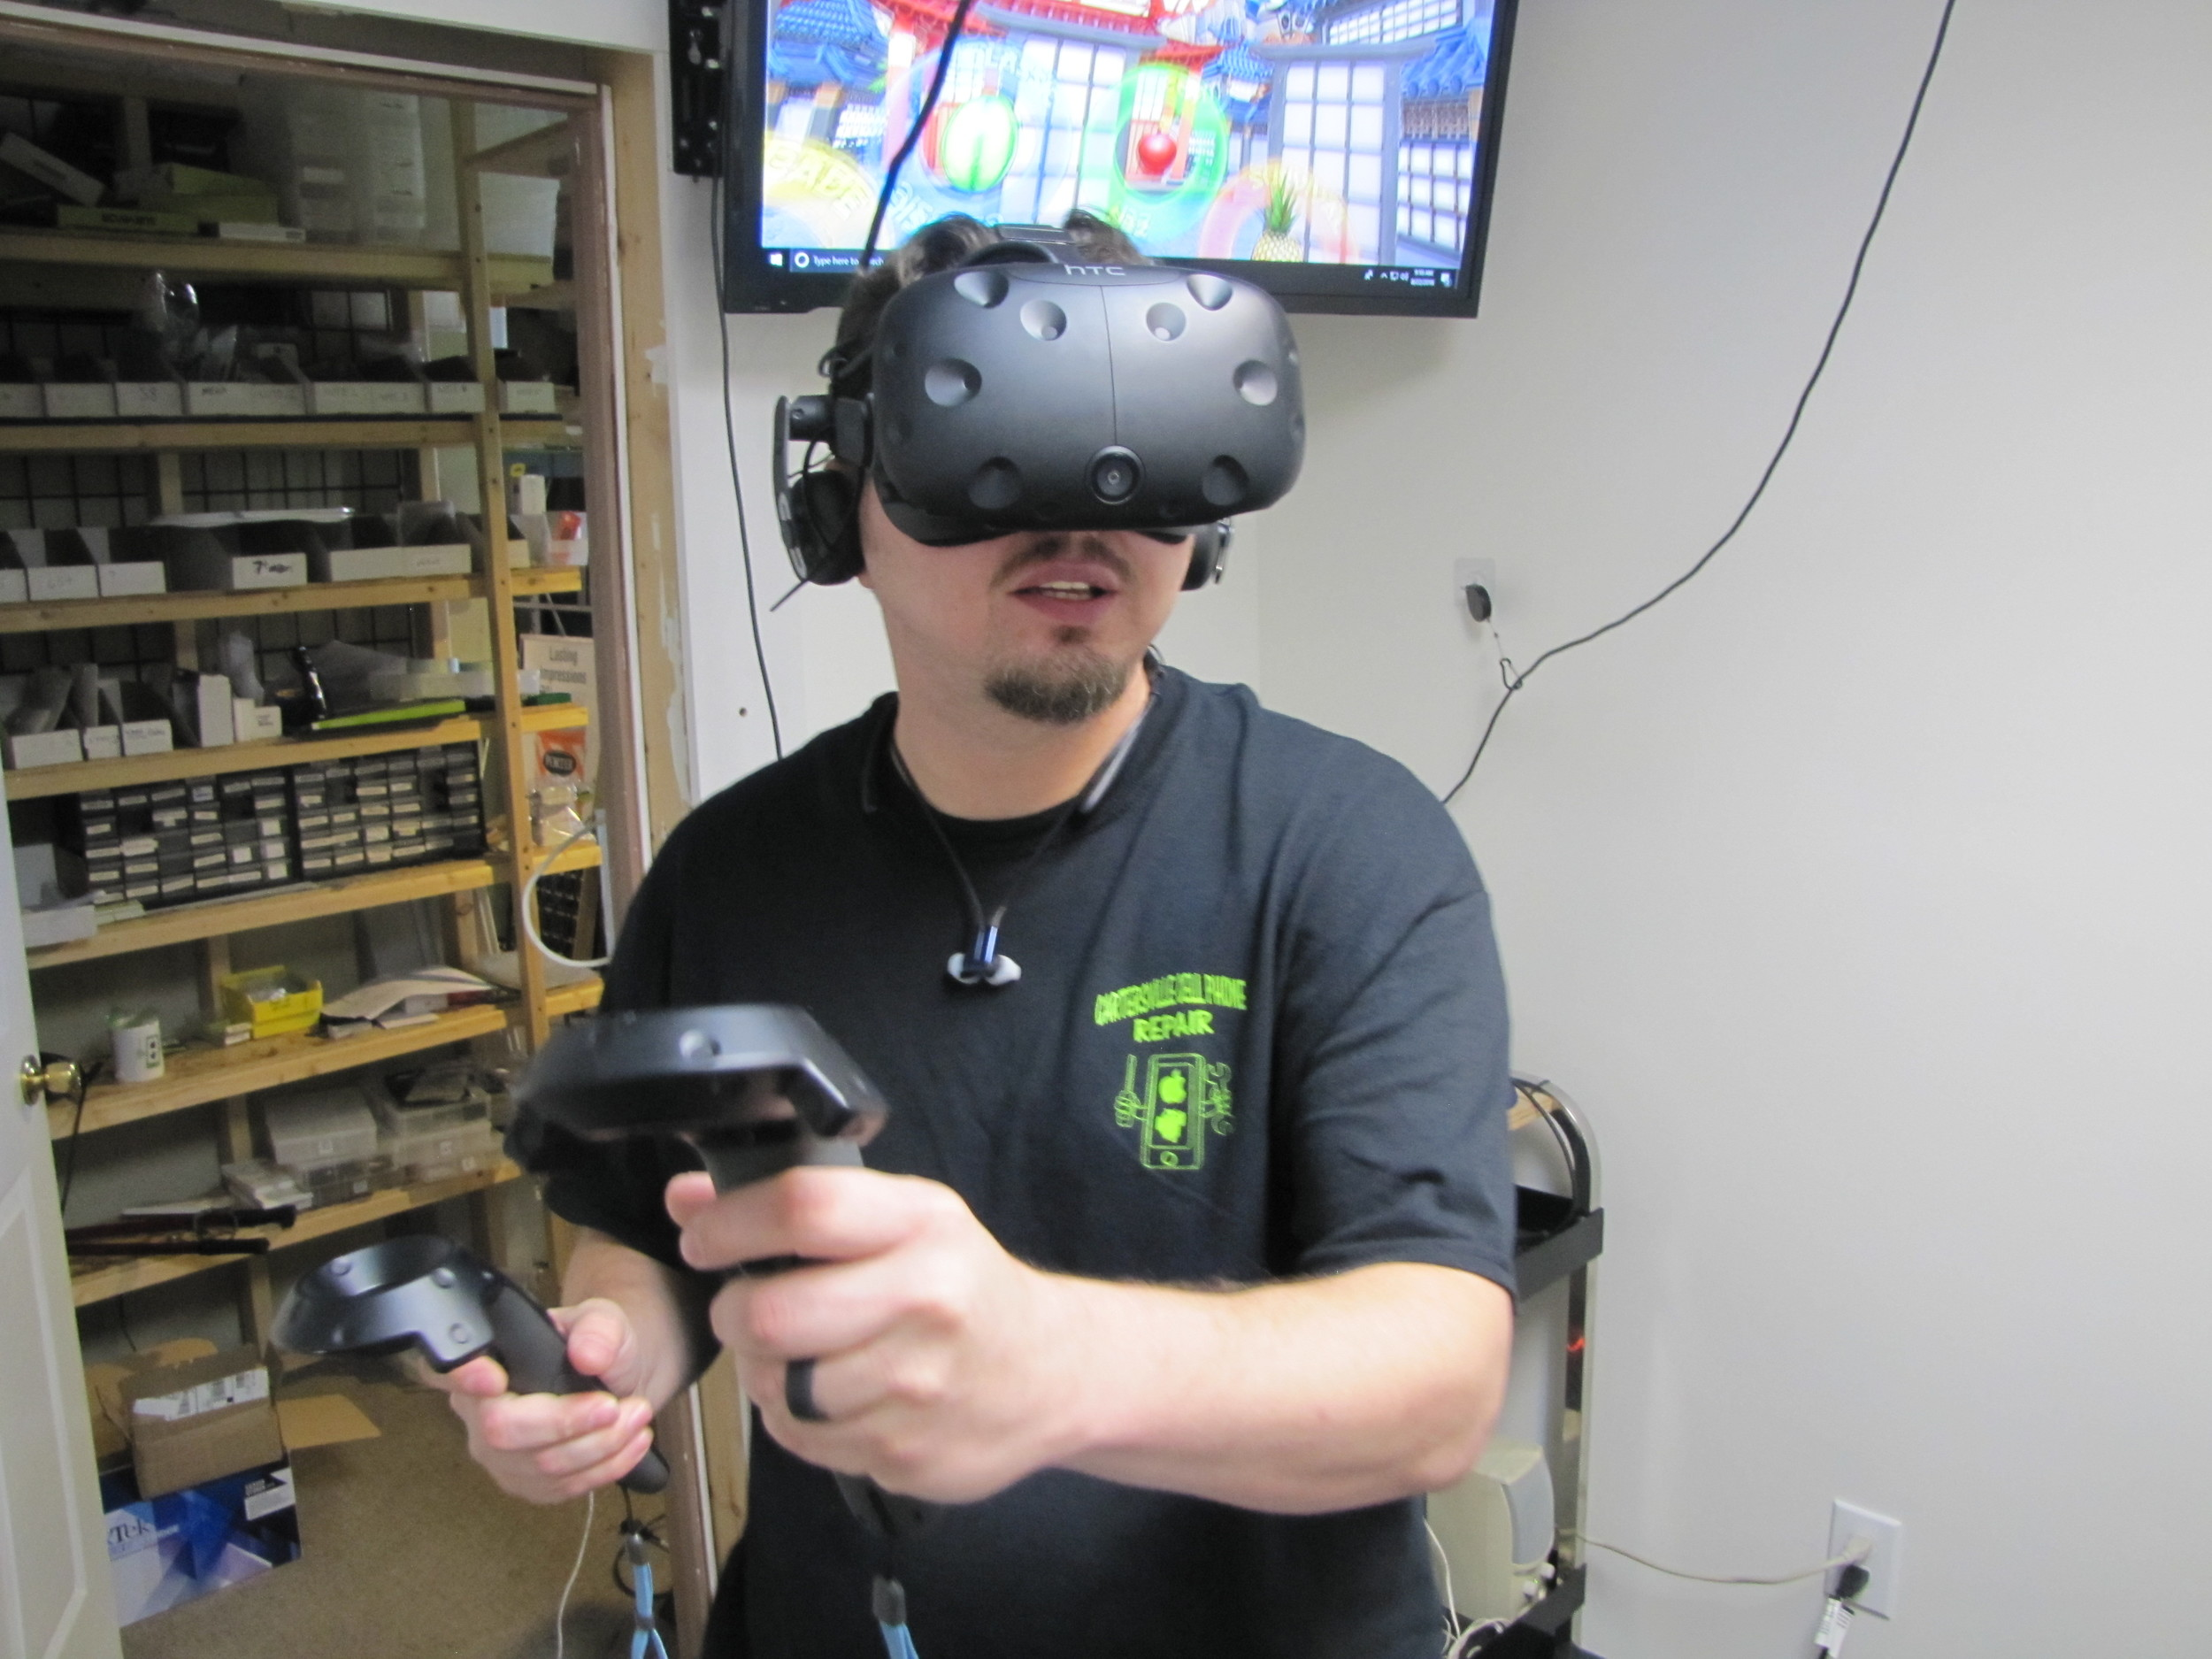 Will Neeley, lead tech at Cartersville Cell Phone Repair, demonstrates his shop's virtual reality arcade.